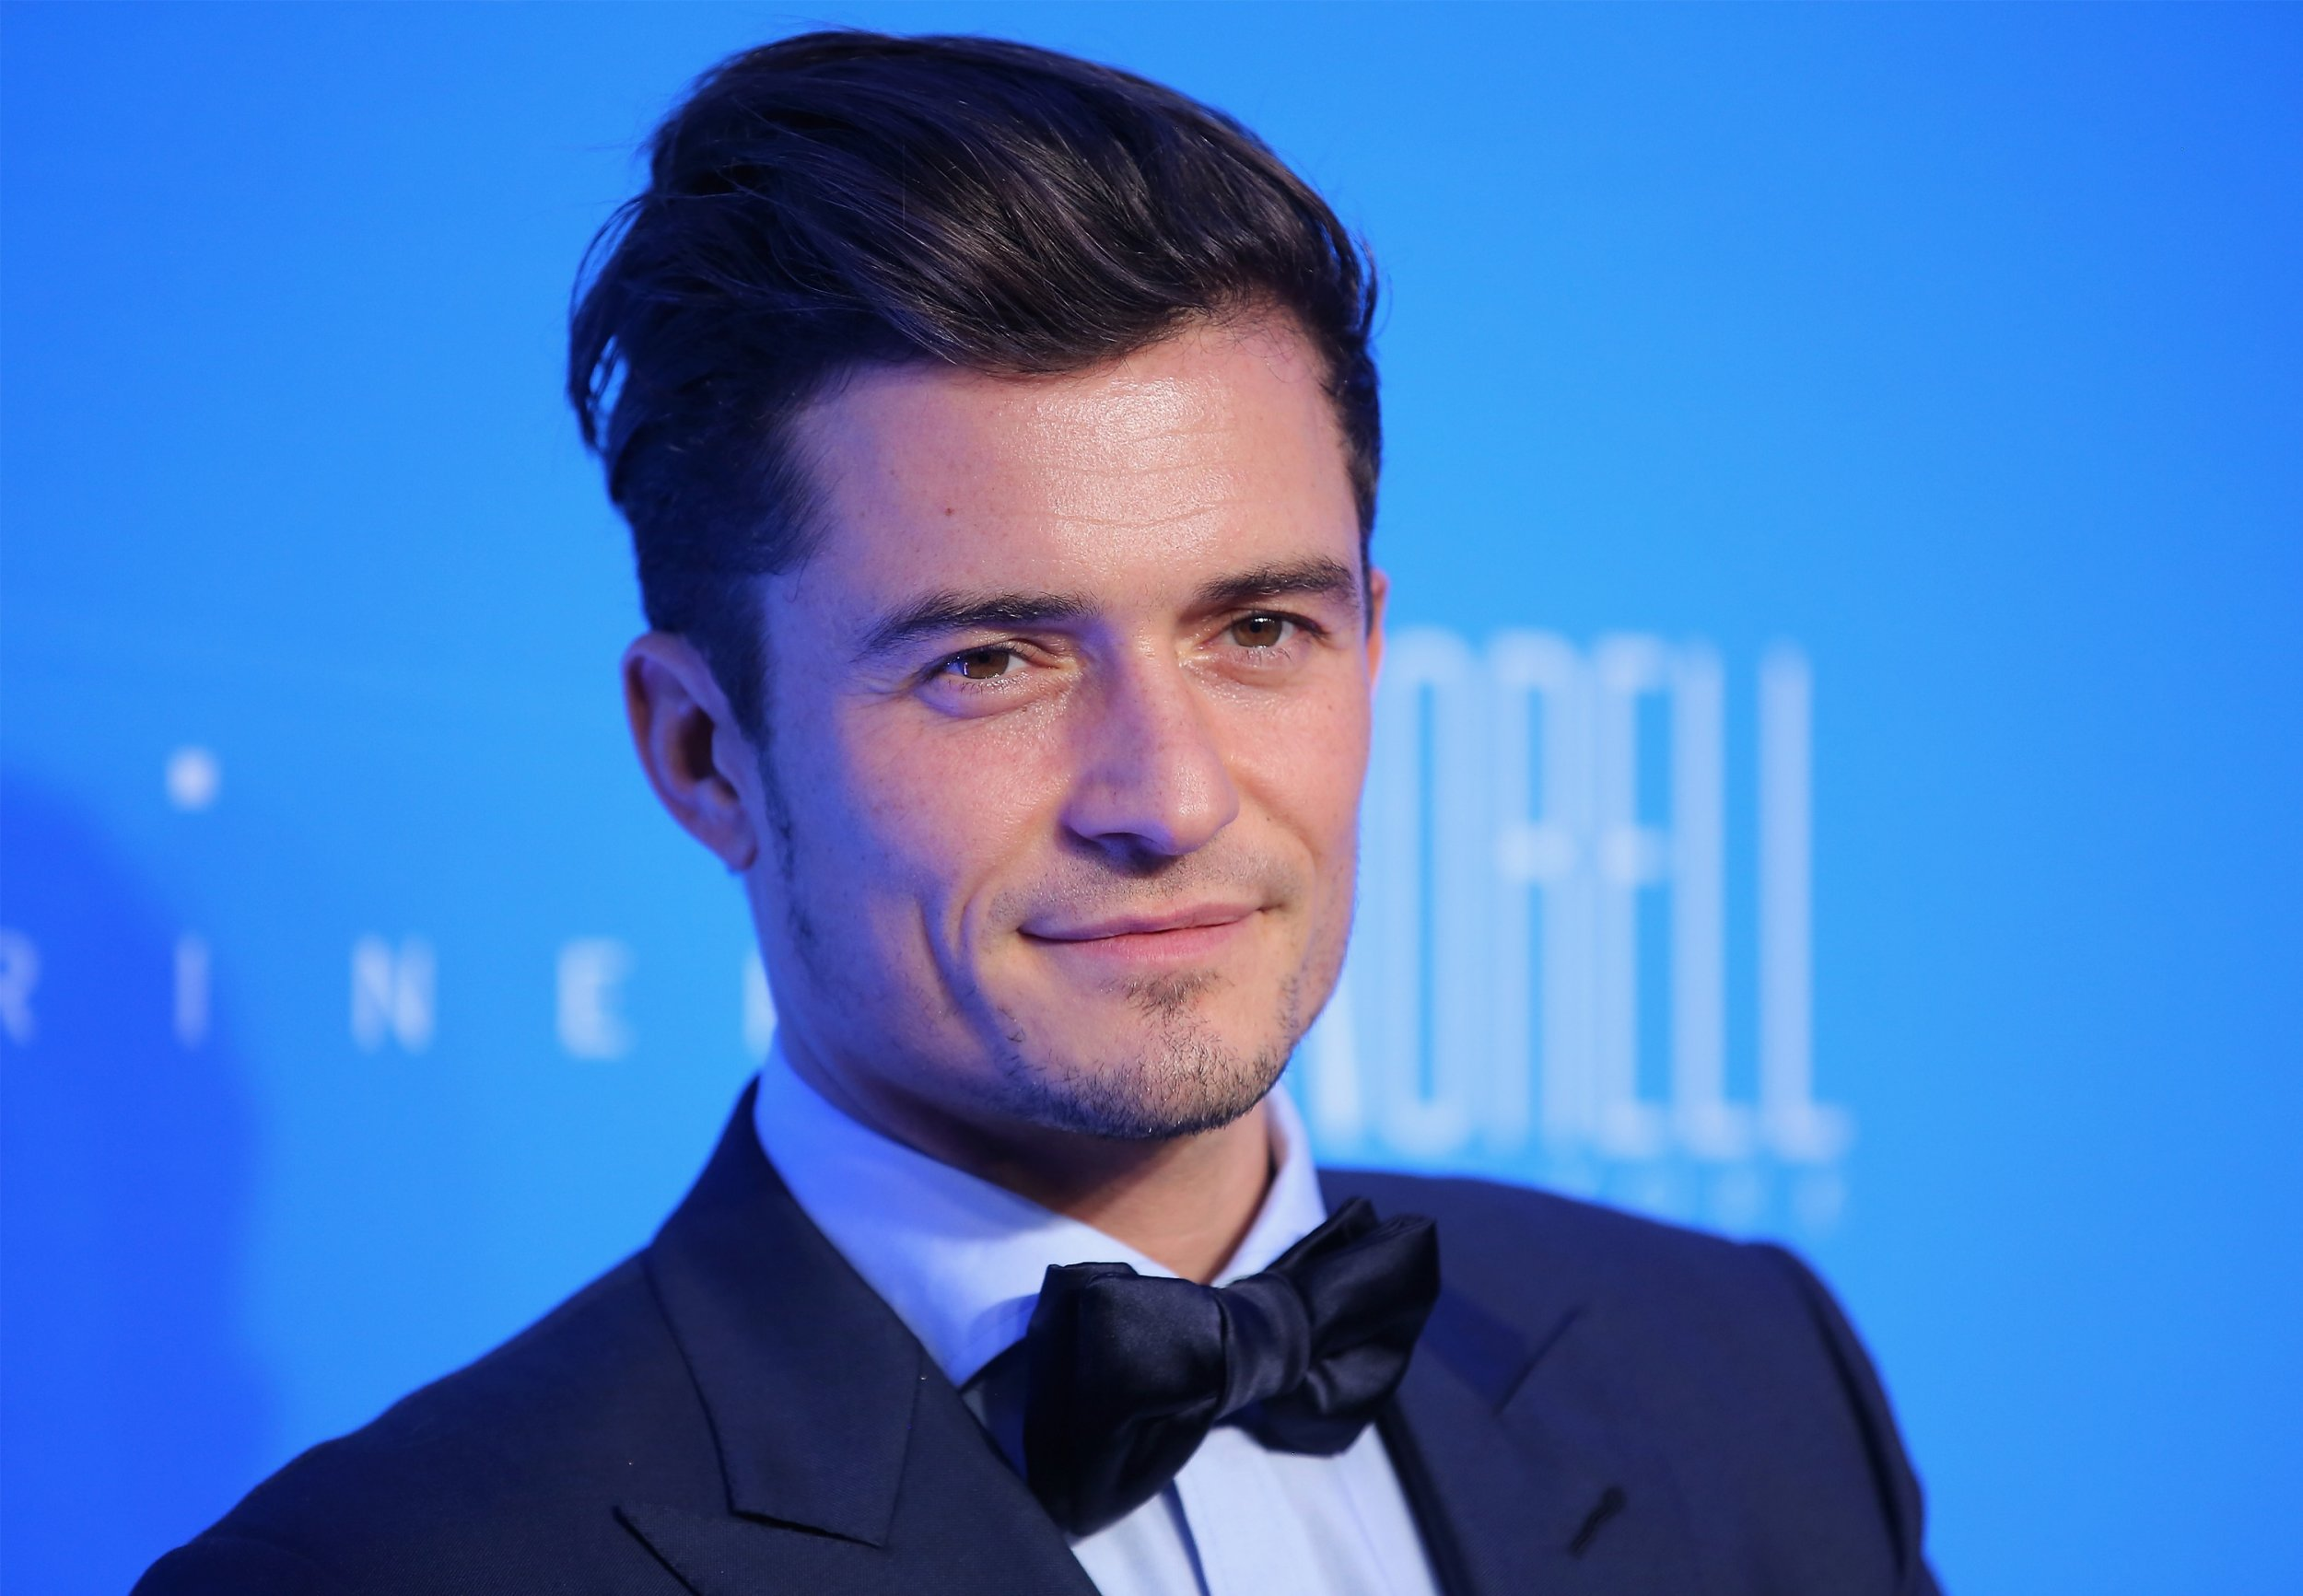 Naked Orlando Bloom Pictures Cause Worldwide Social Media Frenzy-5741